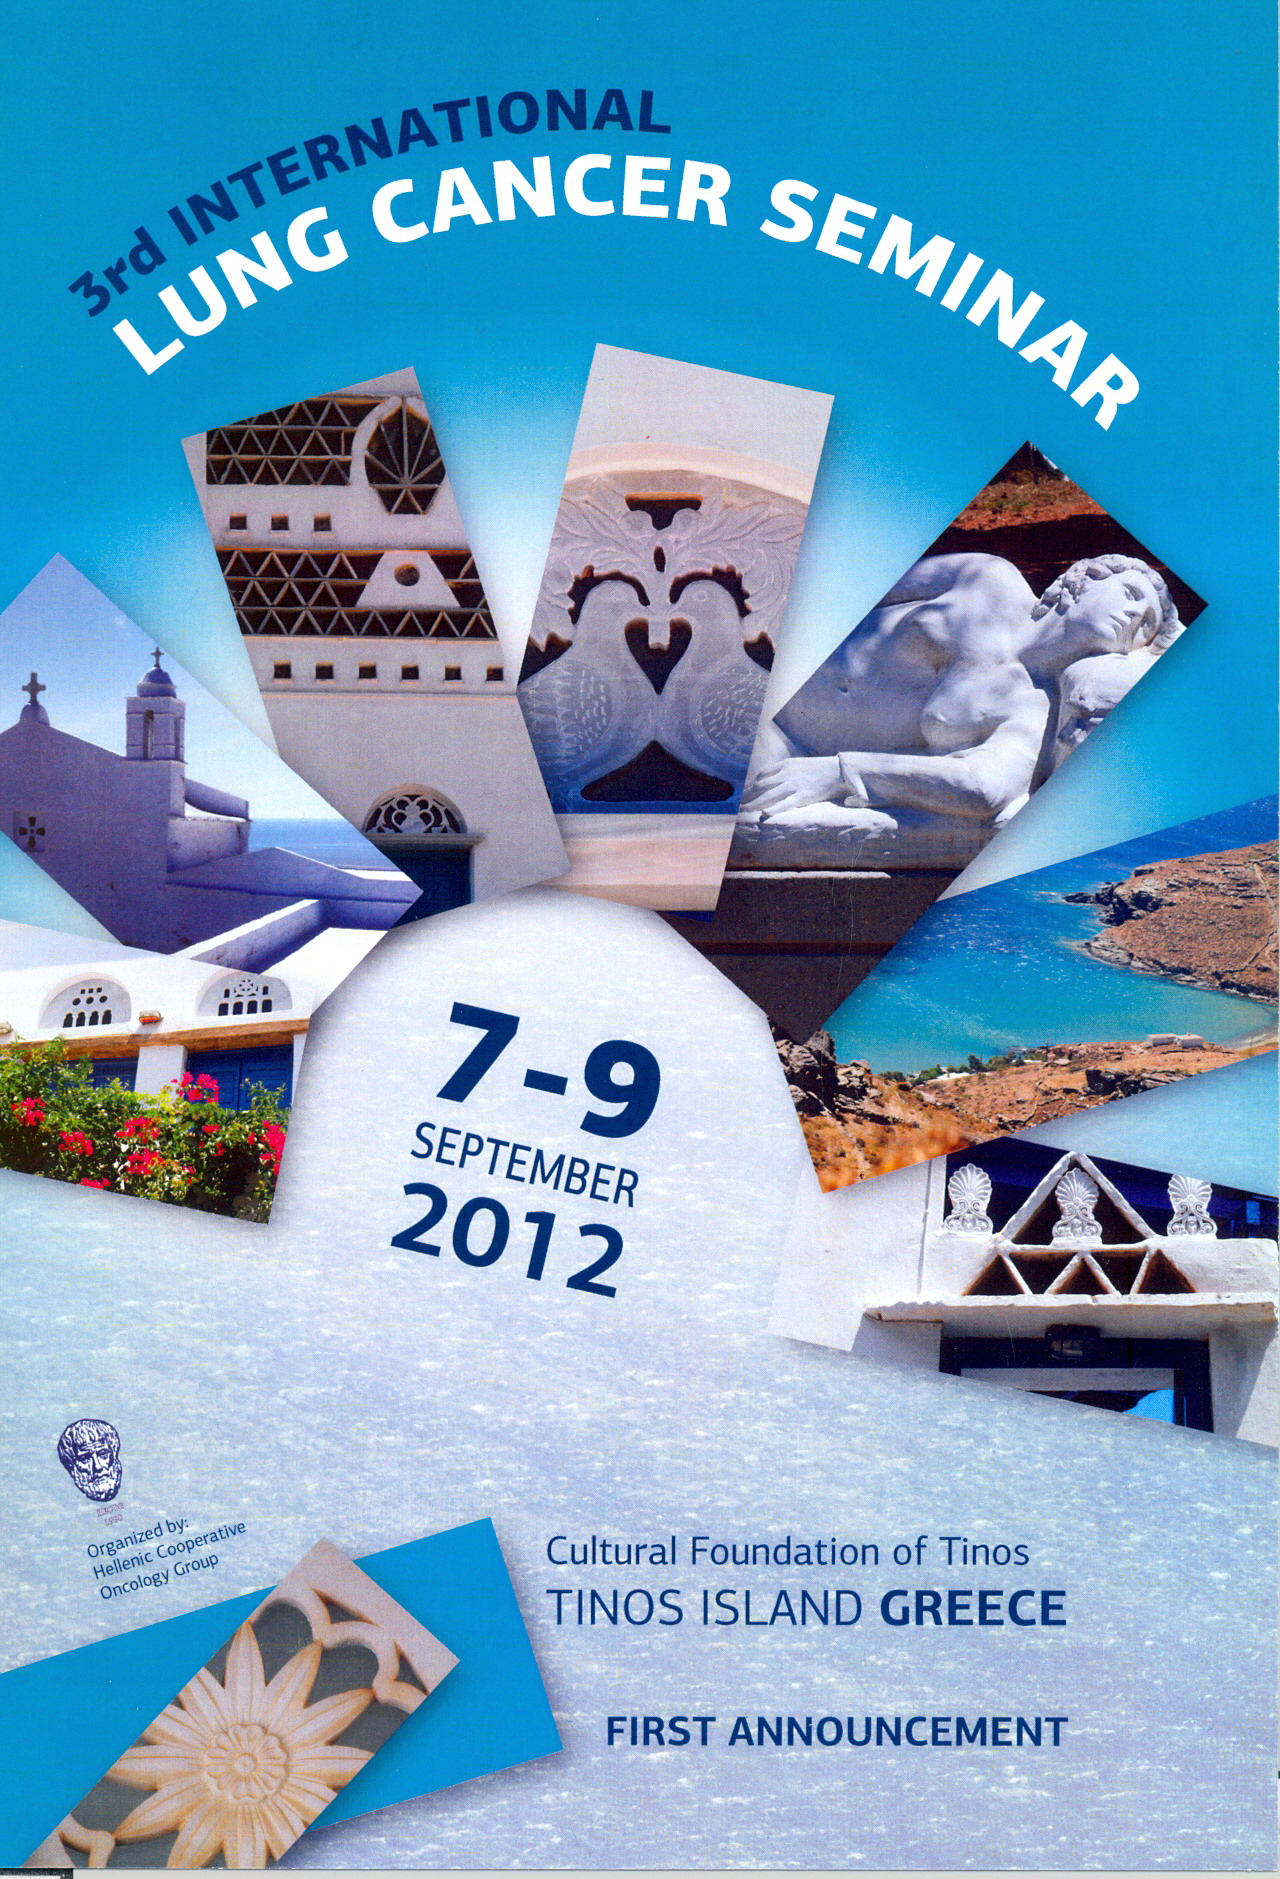 3rd International Lung Cancer Seminar